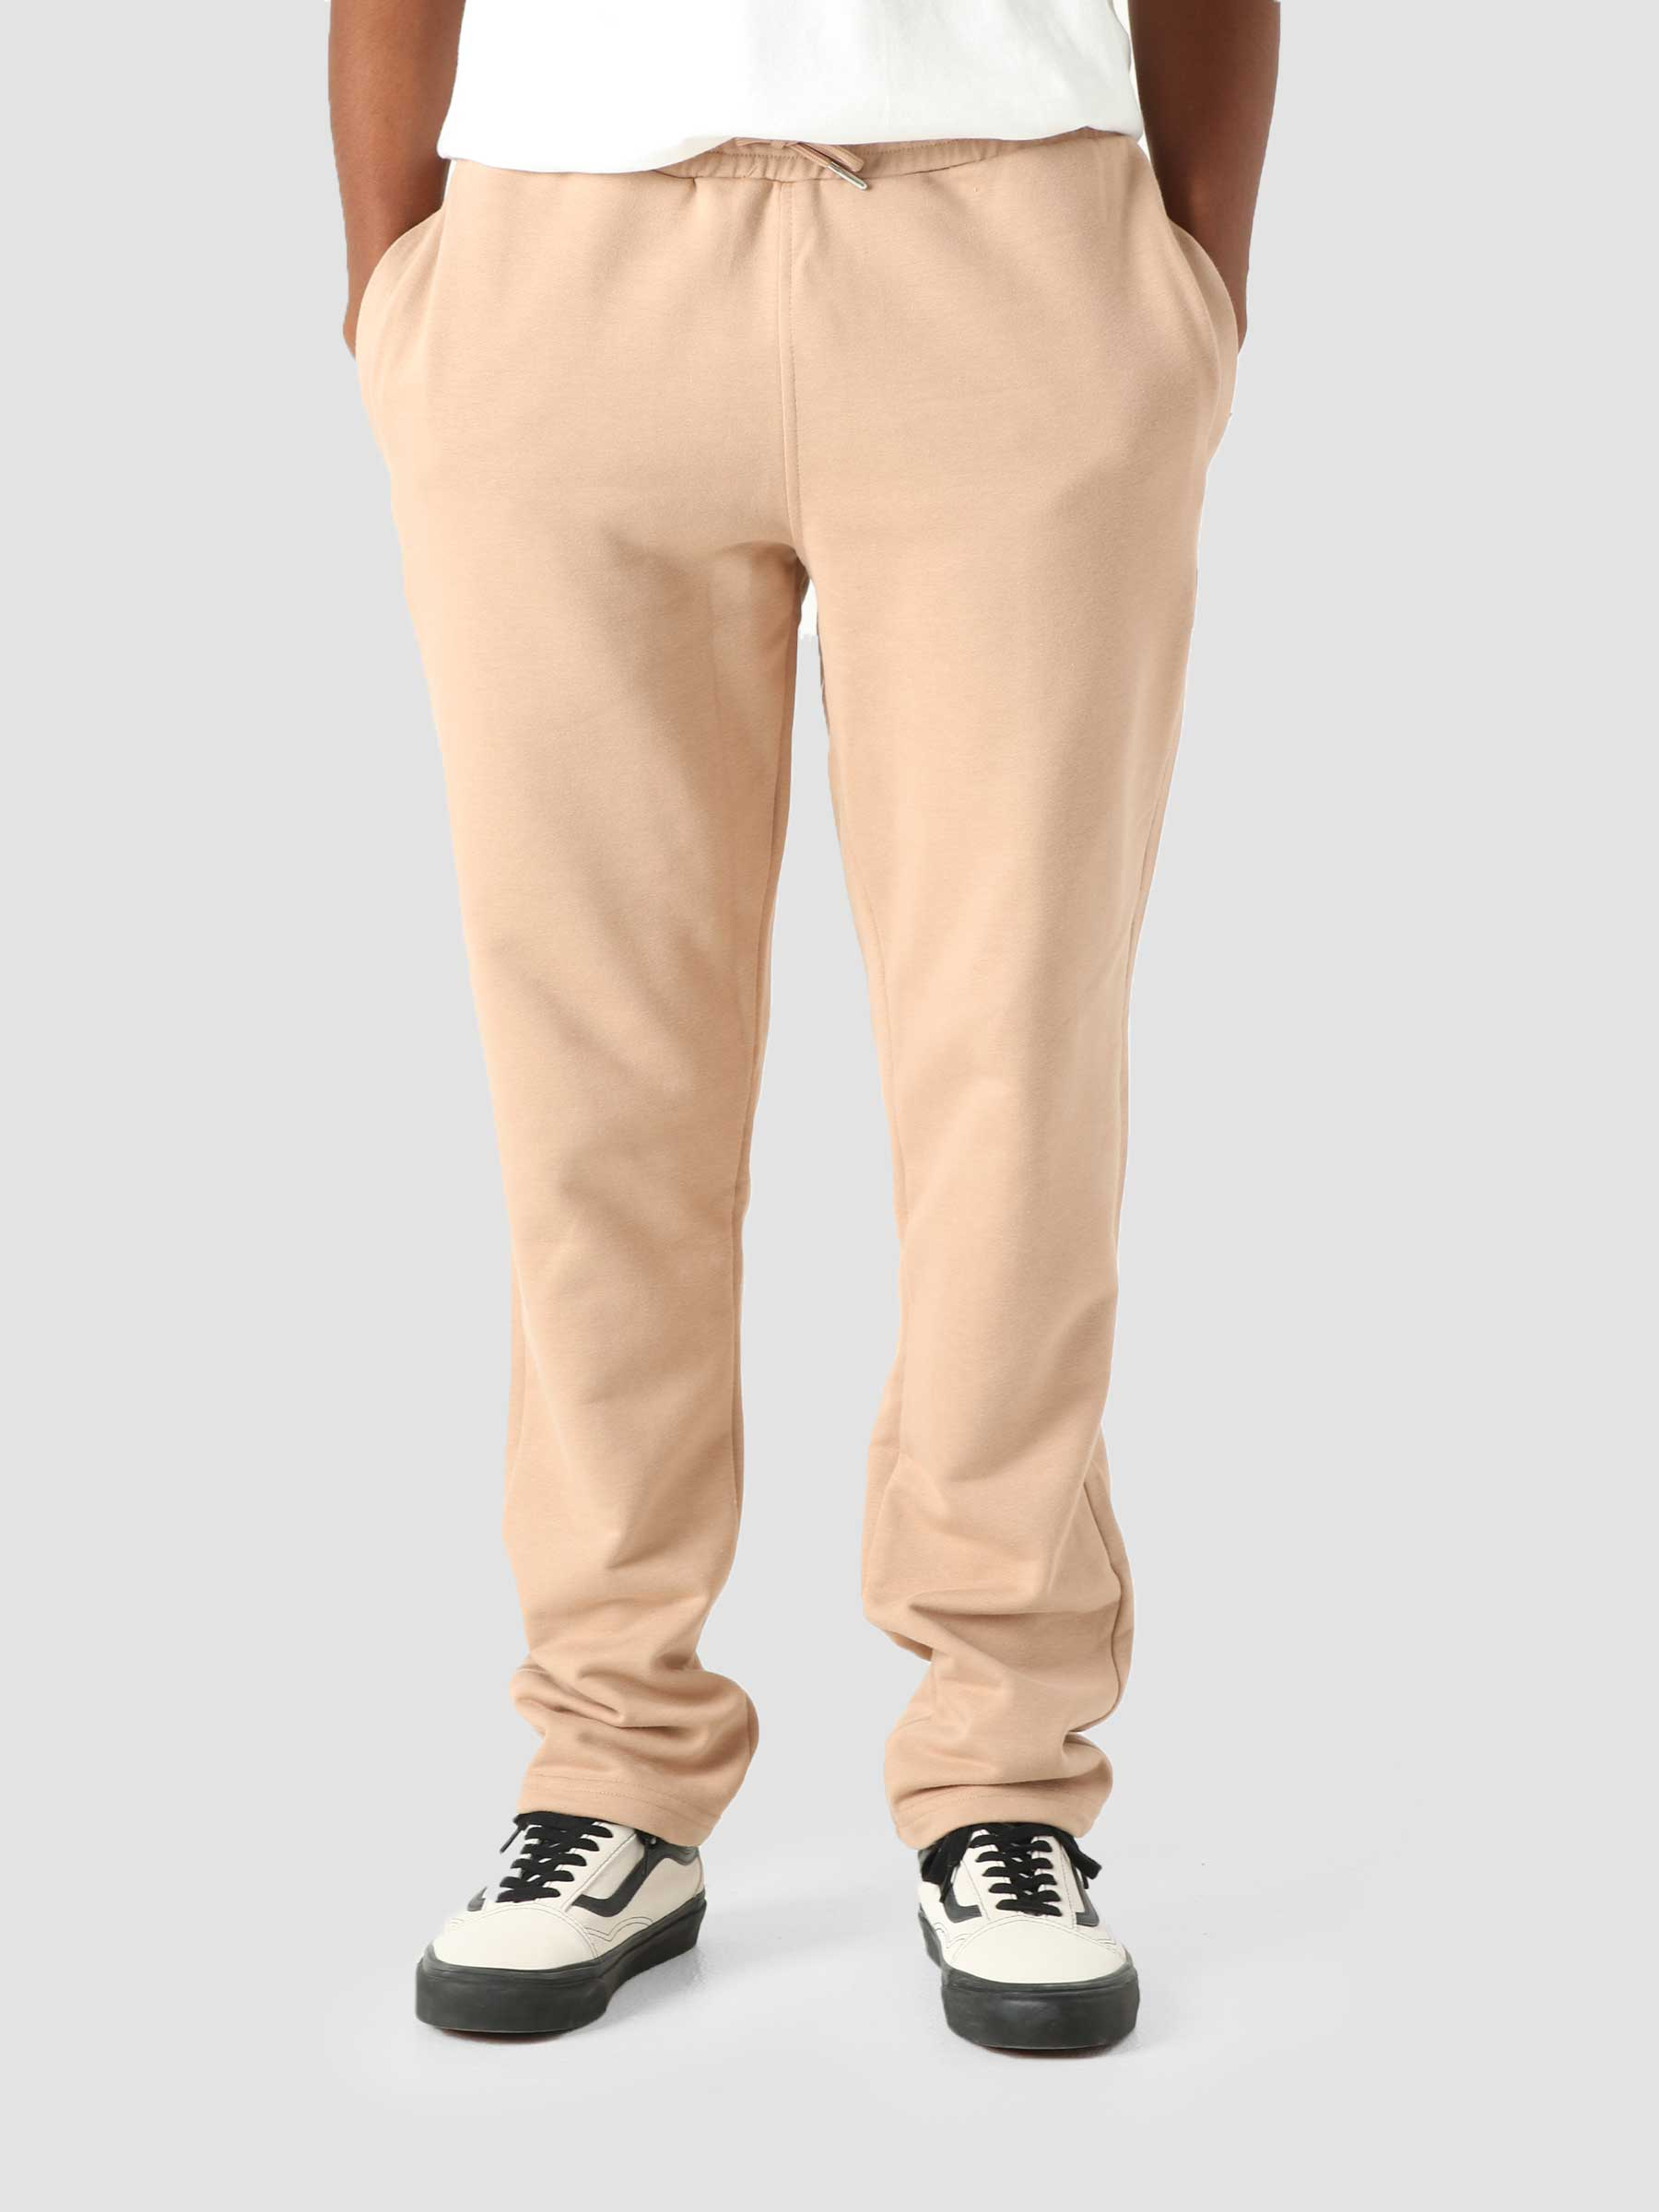 Testudo Trousers Taupe TNO.211.9D.500.405